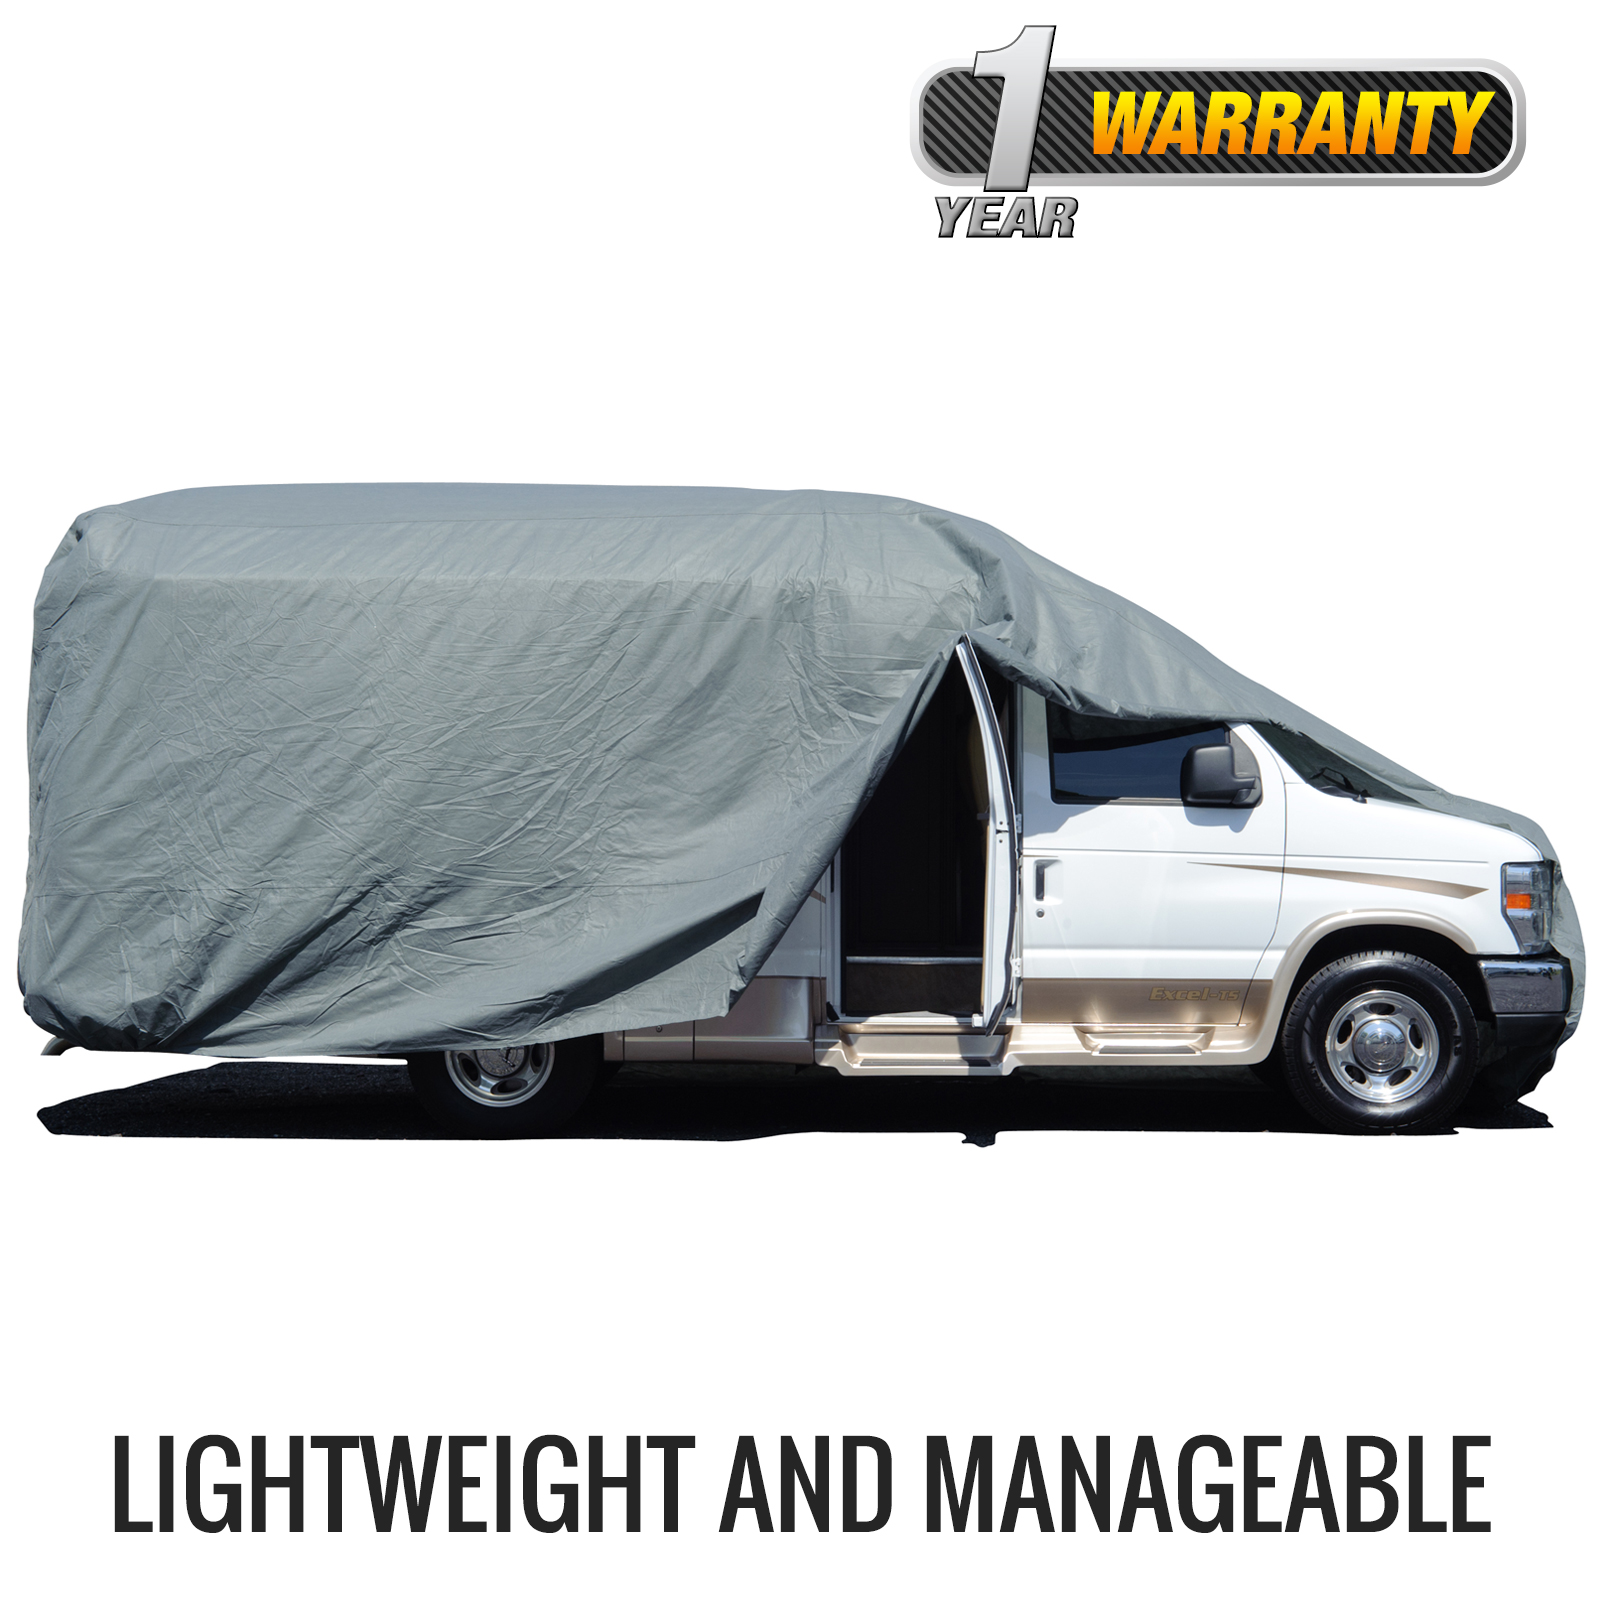 Budge Standard Class B RV Cover (Gray) Small Up to 19.5' Long